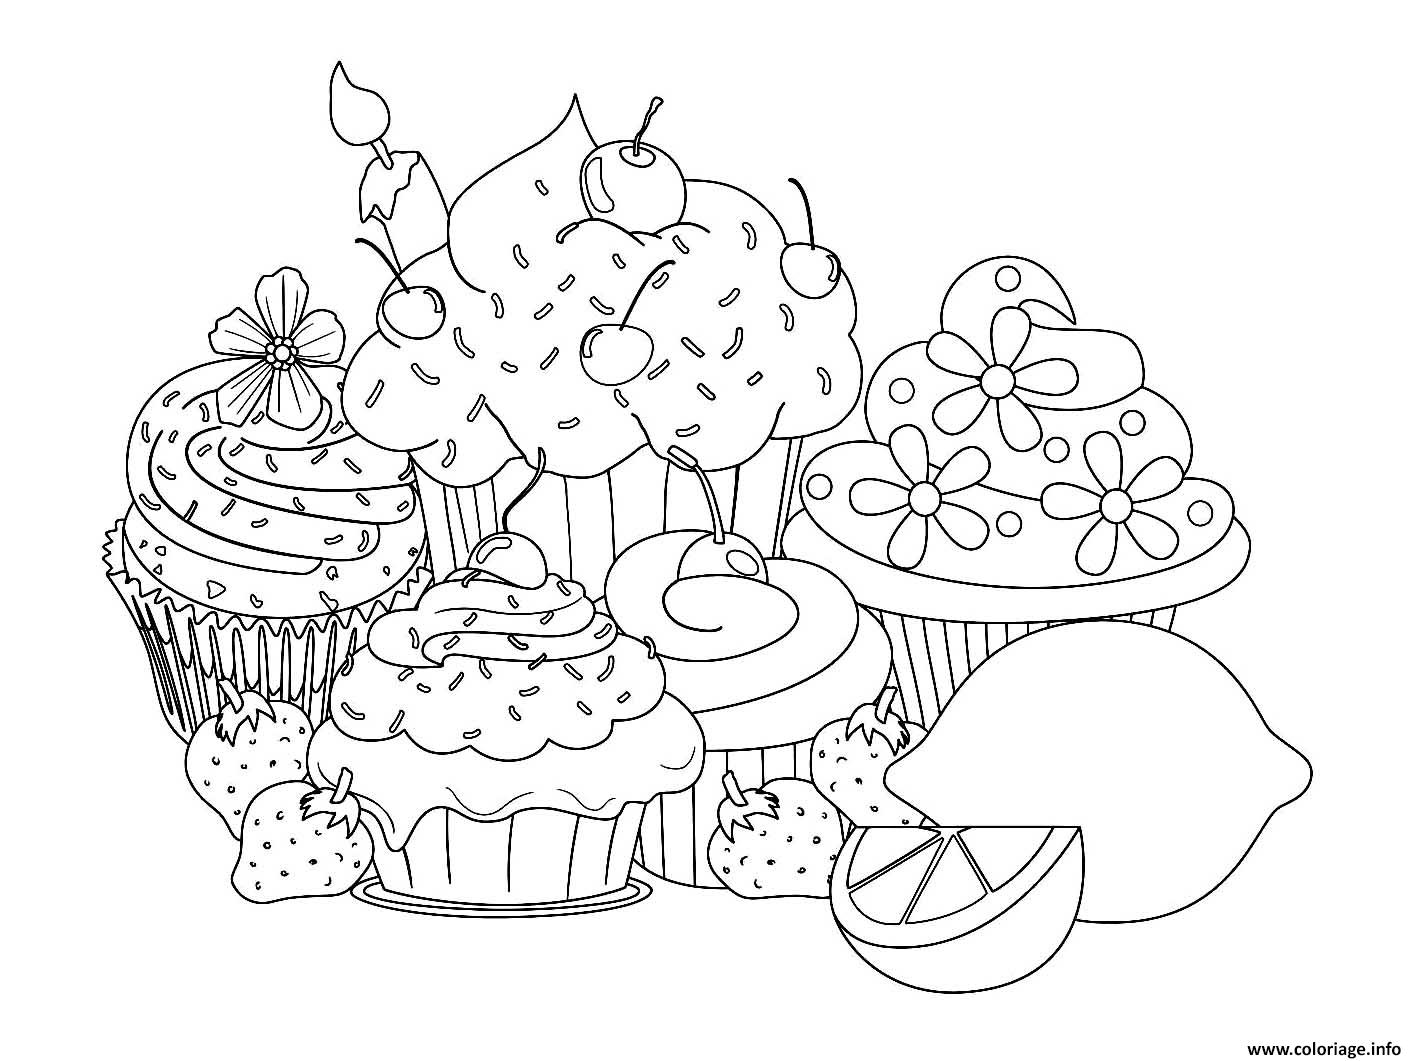 cool medium difficulty coloring pages - photo#20